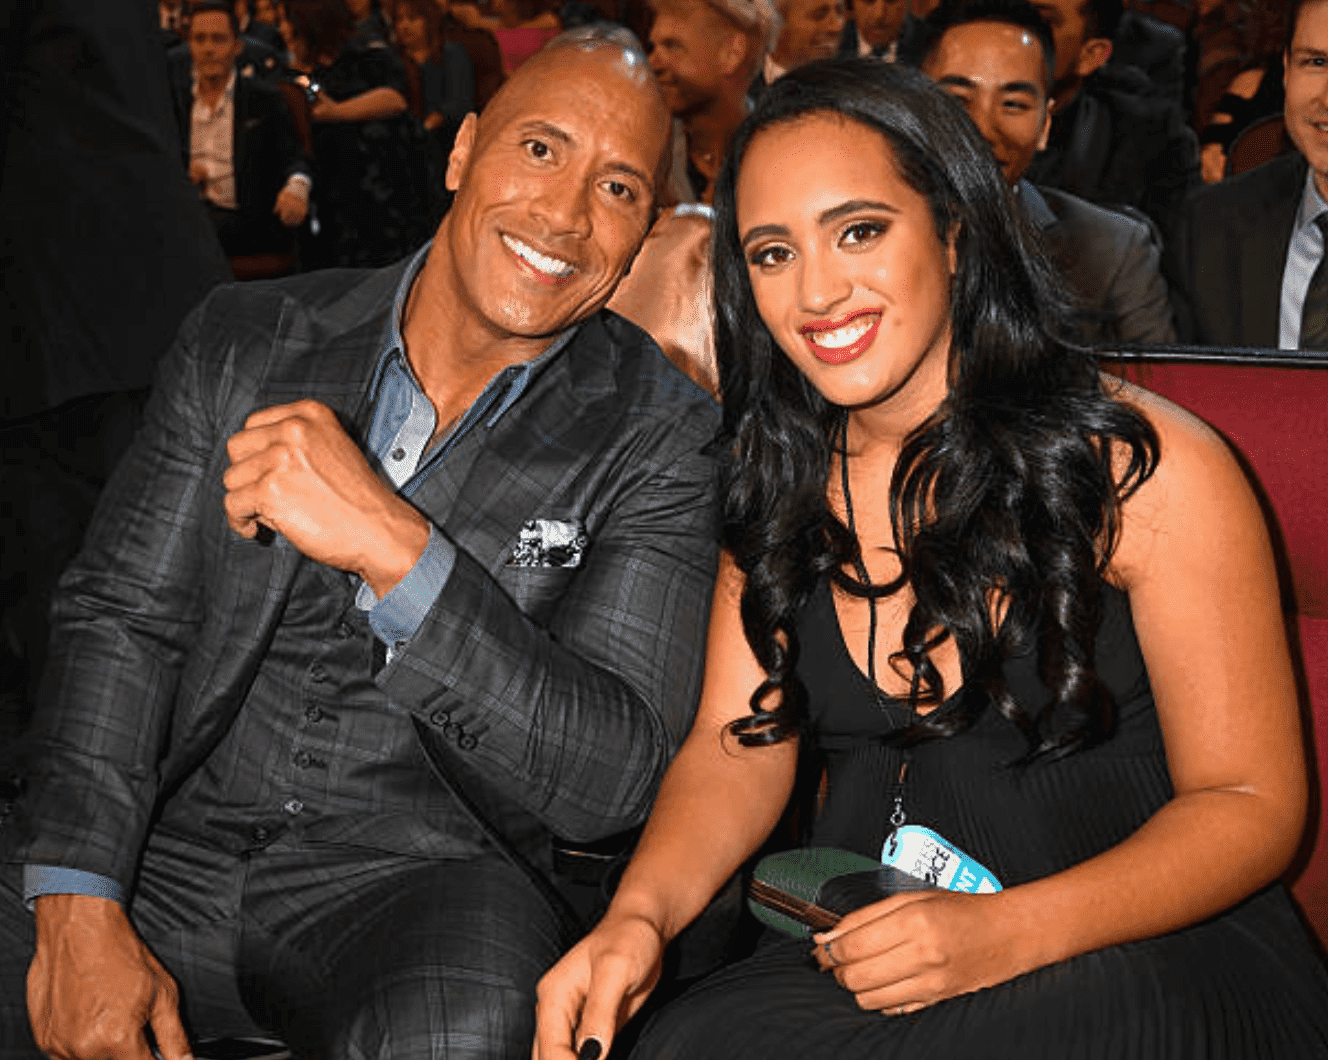 Dwayne Johnson attends the 2017 Peoples Choice Awards with daughter, Simone |Getty Images